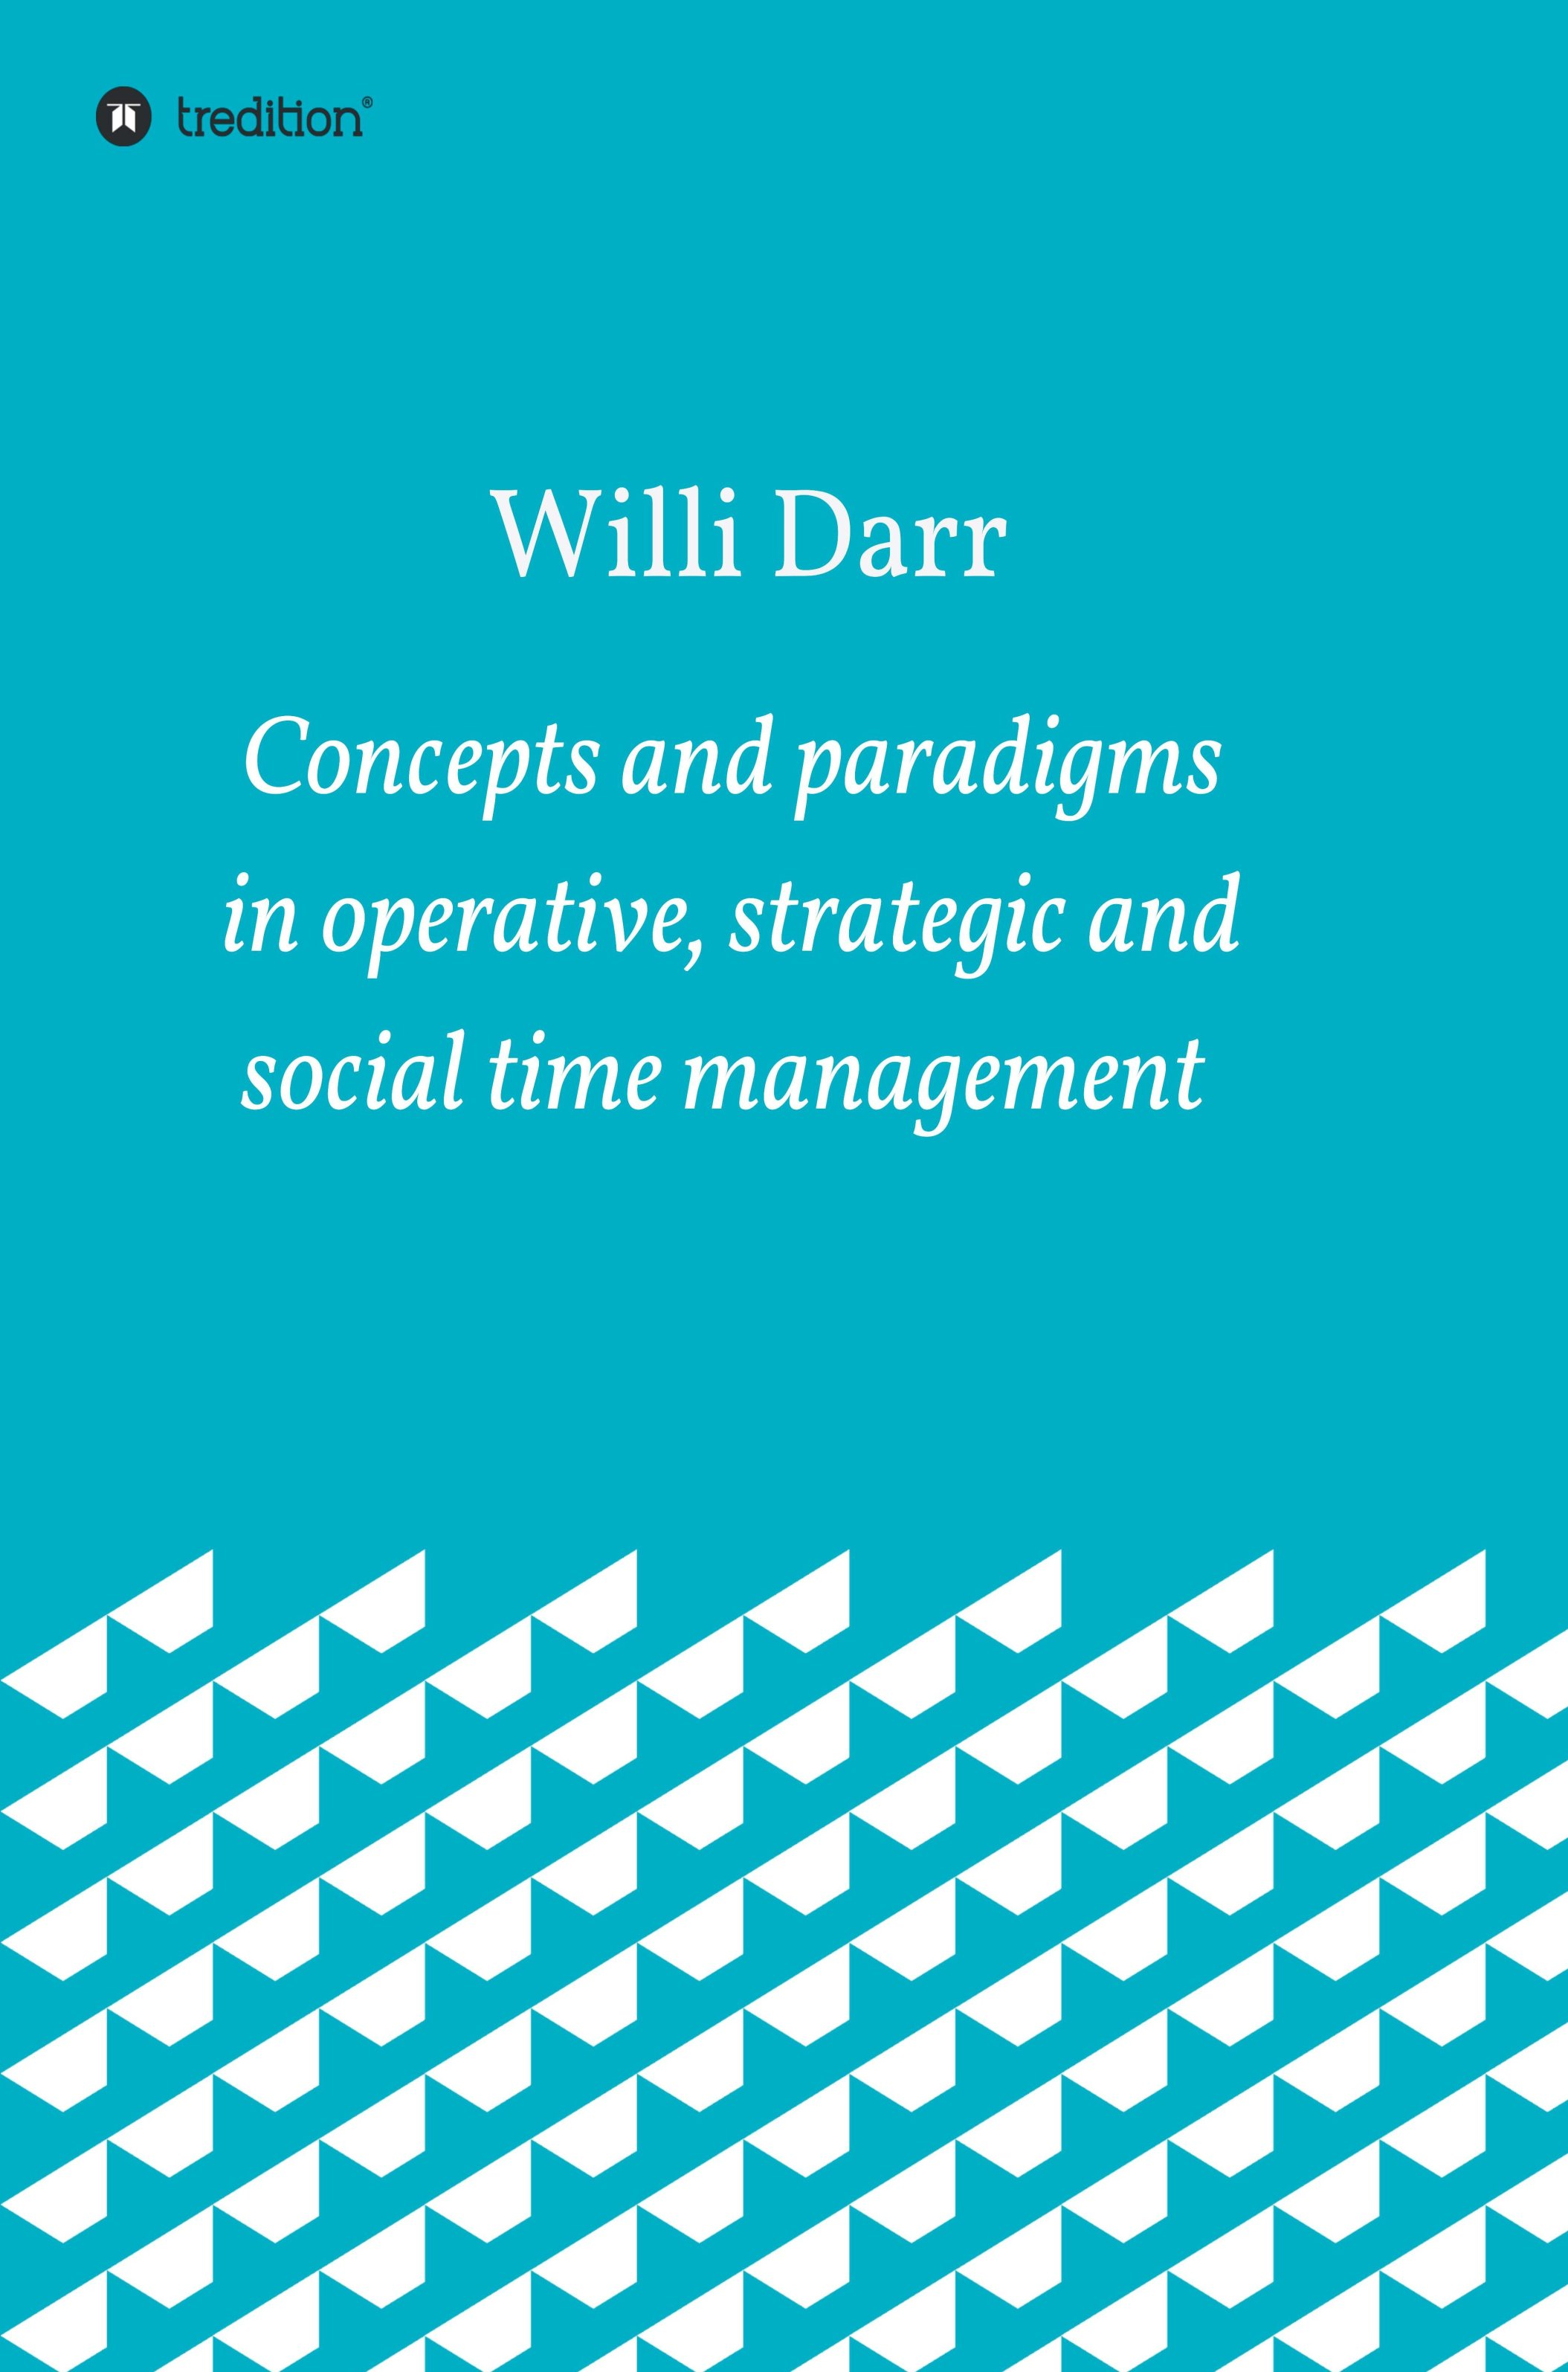 Concepts and paradigms in operative, strategic and social time management - Subject-specific business discussion